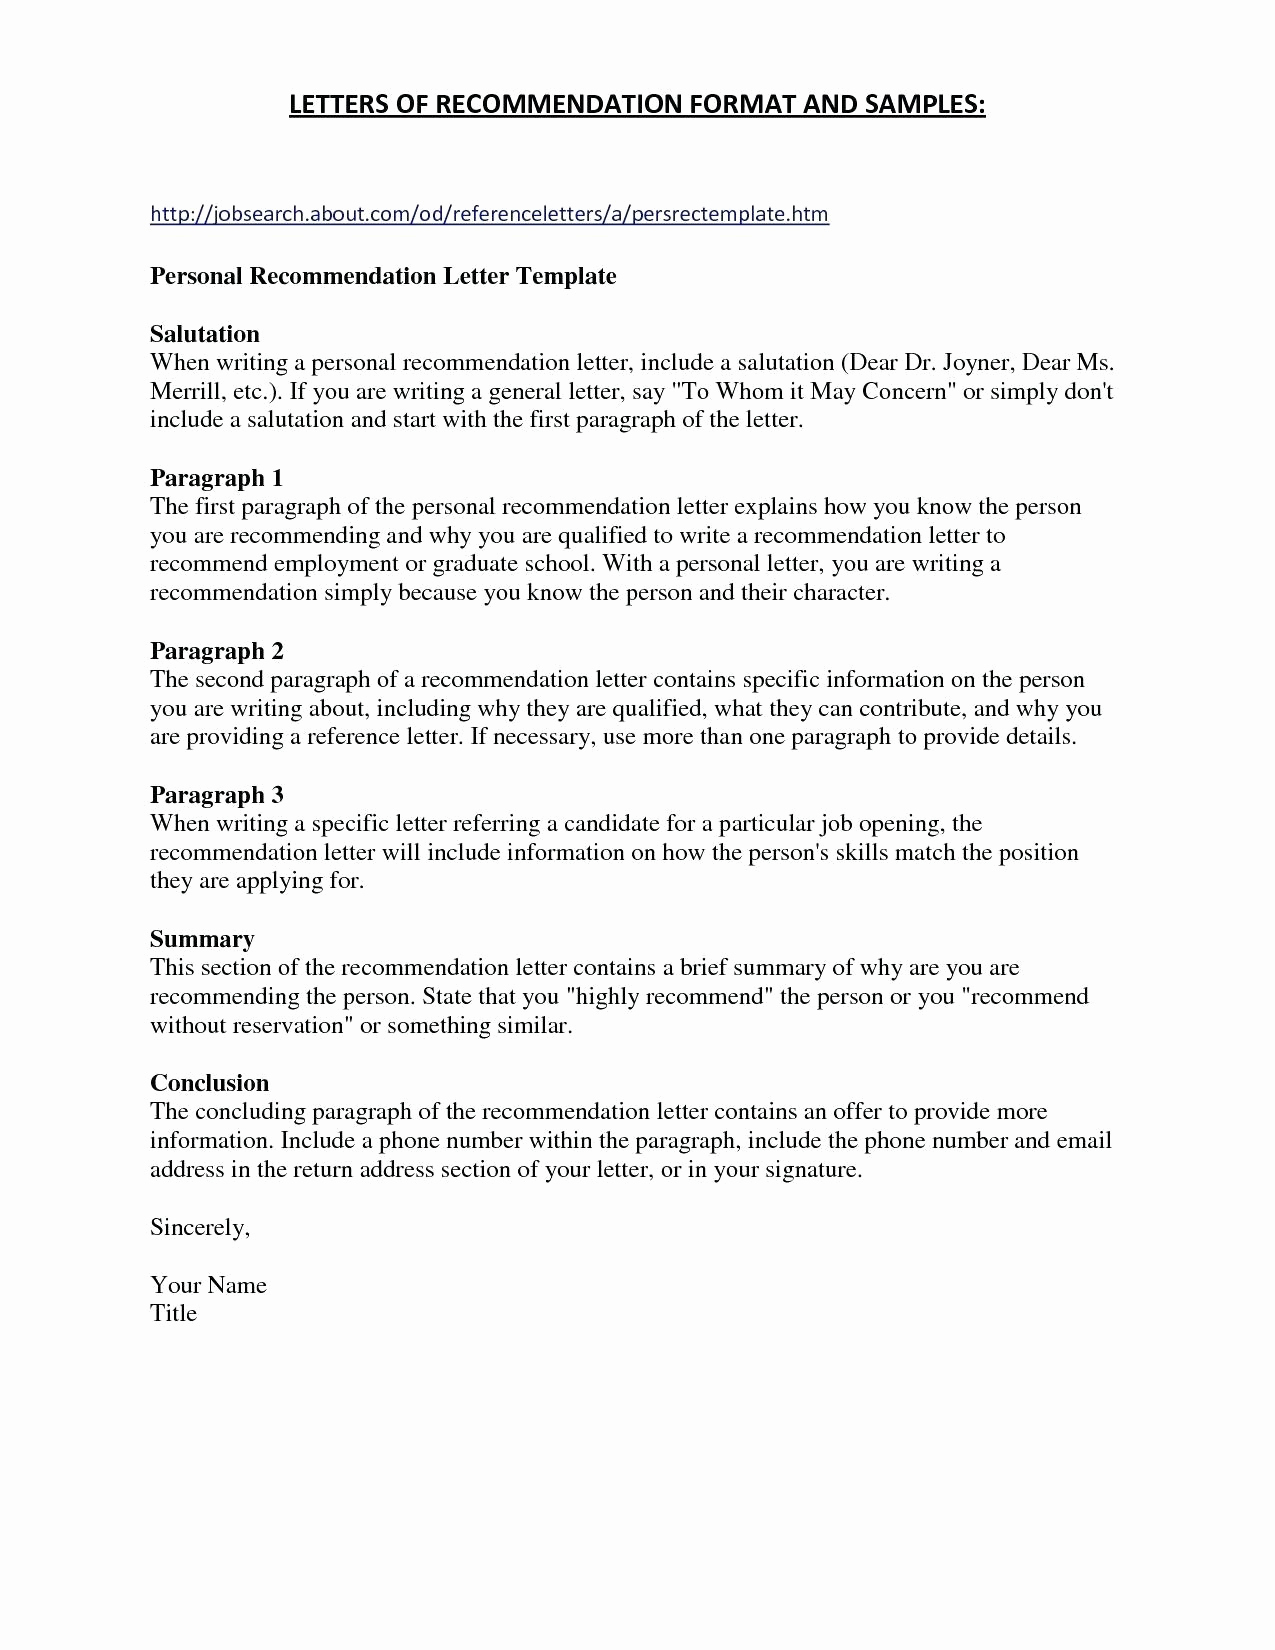 Startup Offer Letter Template - Sample Personalcharacter Reference Letter Created Using Ms Word